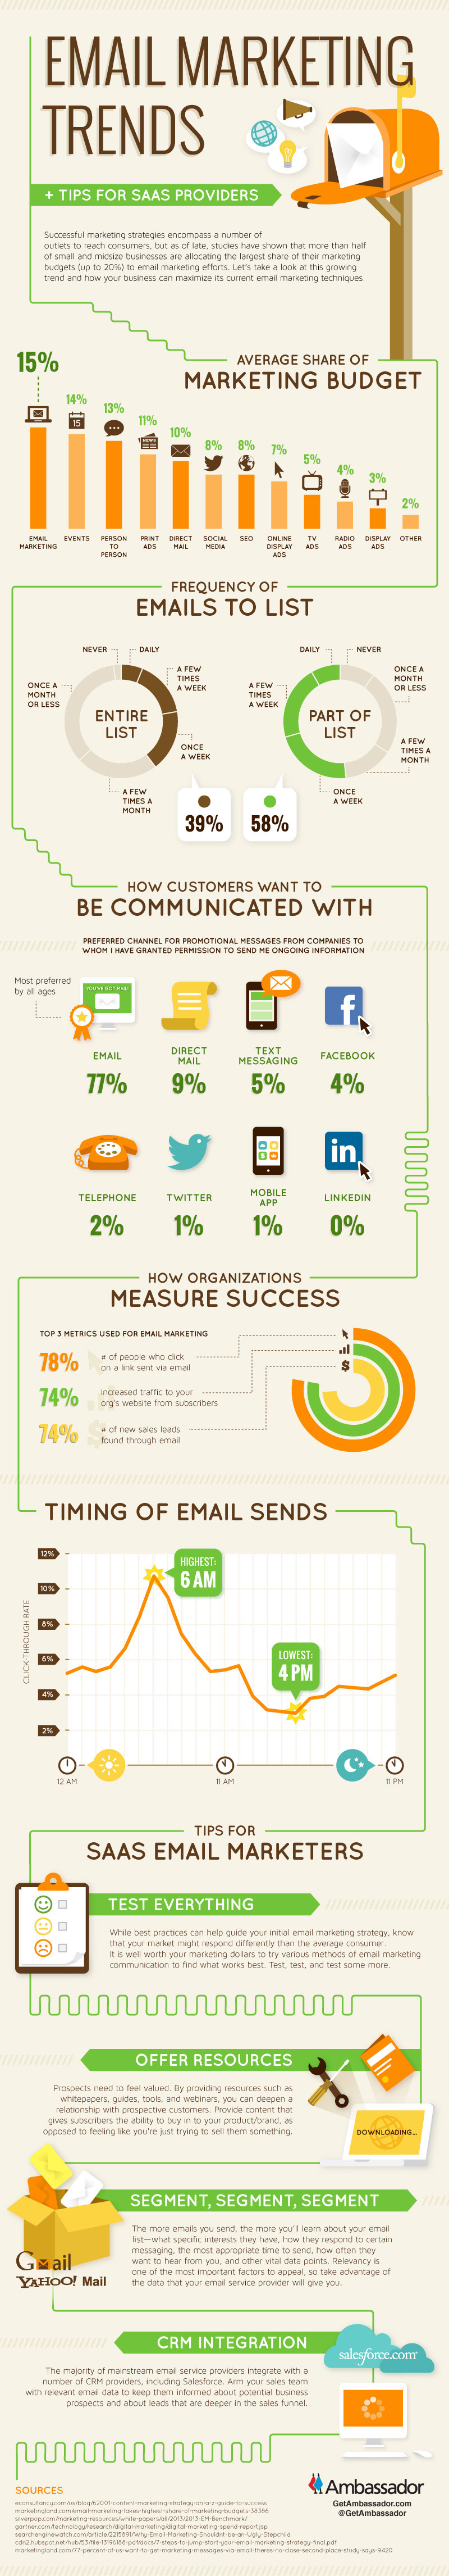 Referral Marketing Strategy Email Marketing Trends